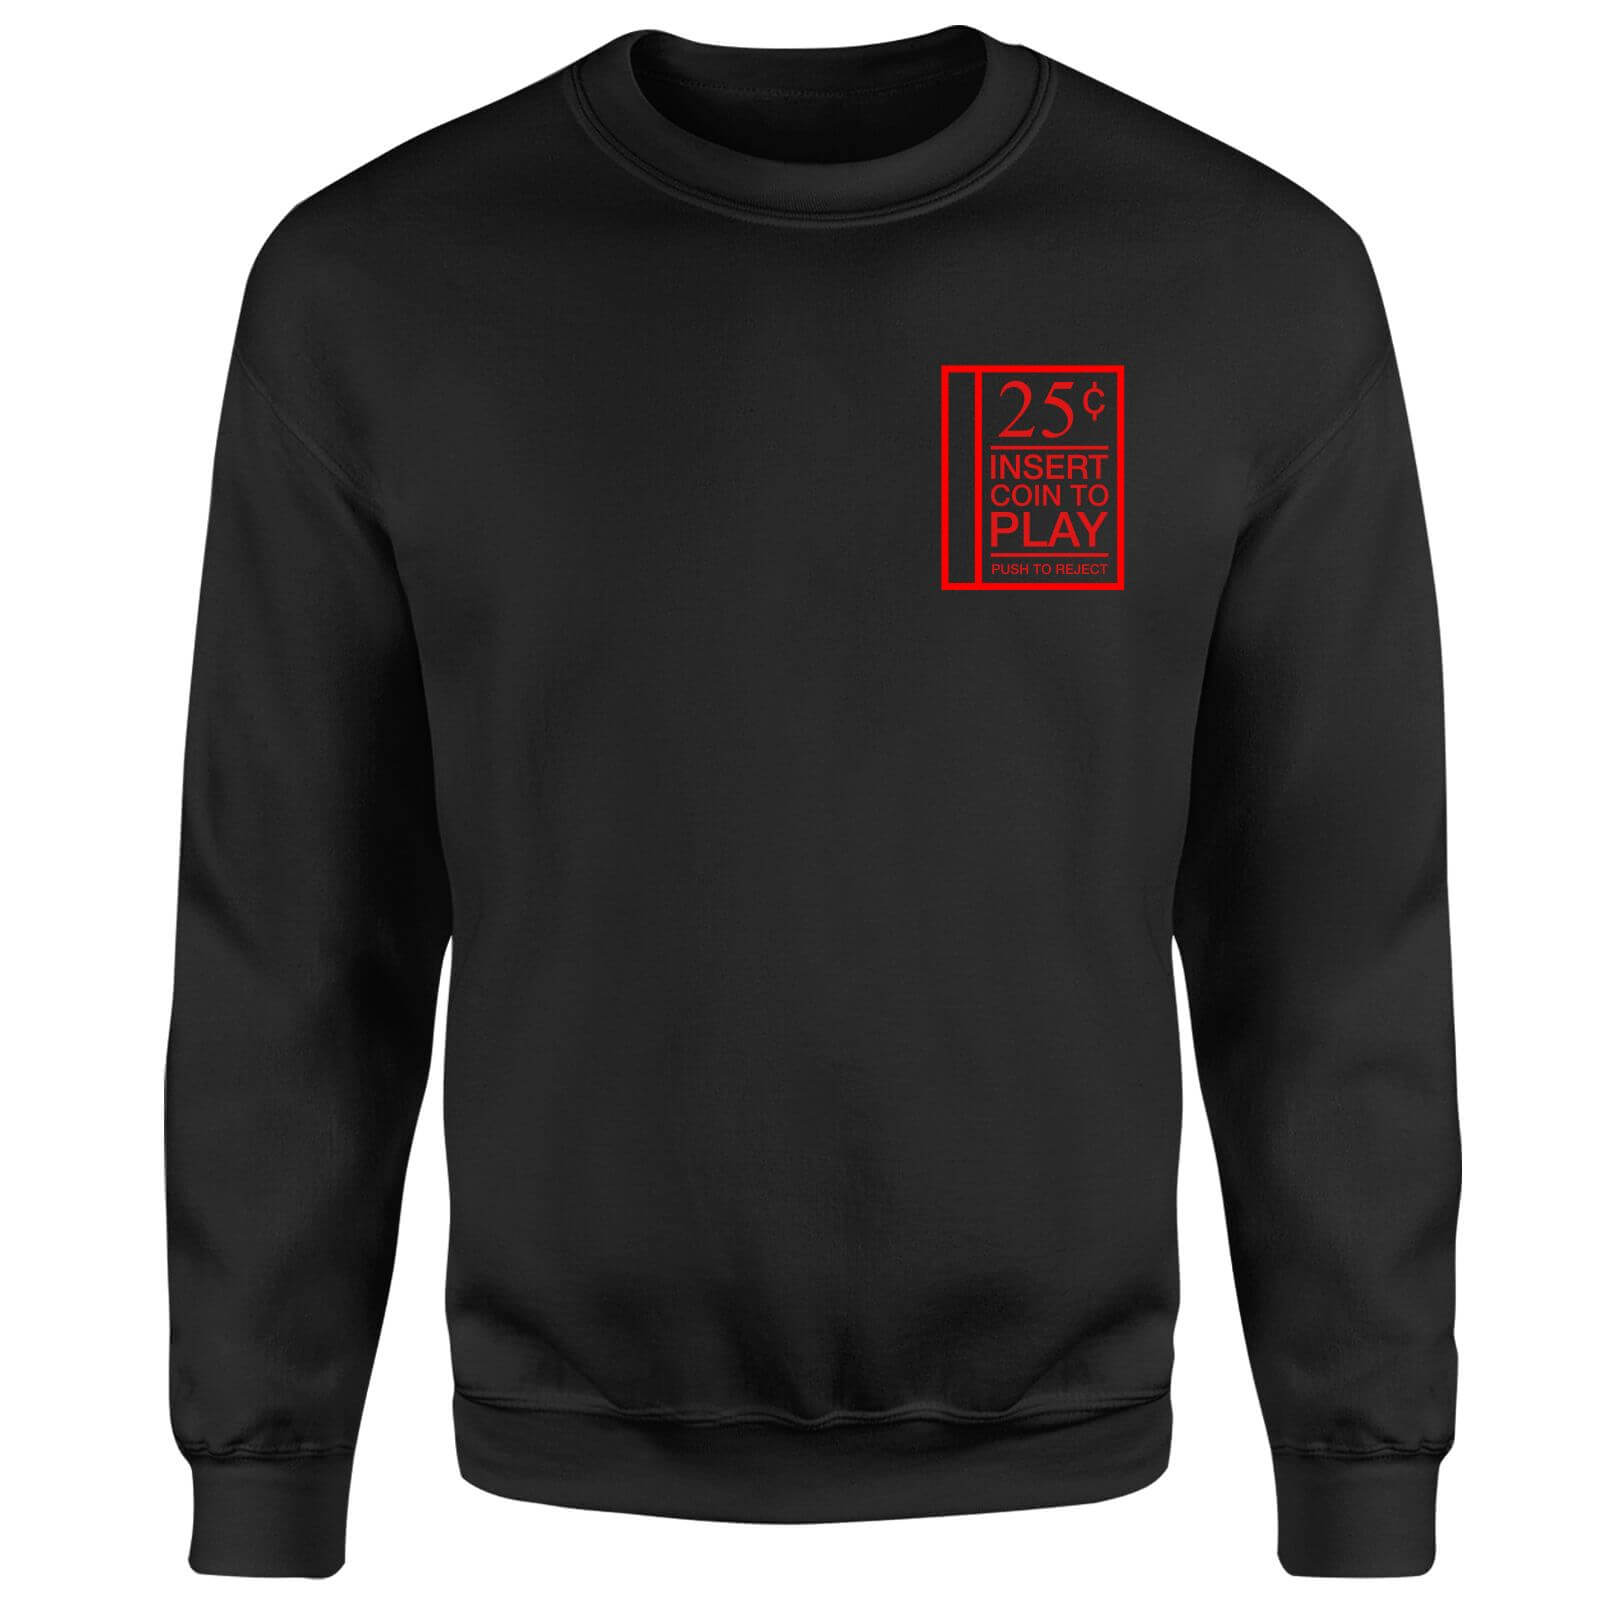 Insert Coint to Play Sweatshirt - Black